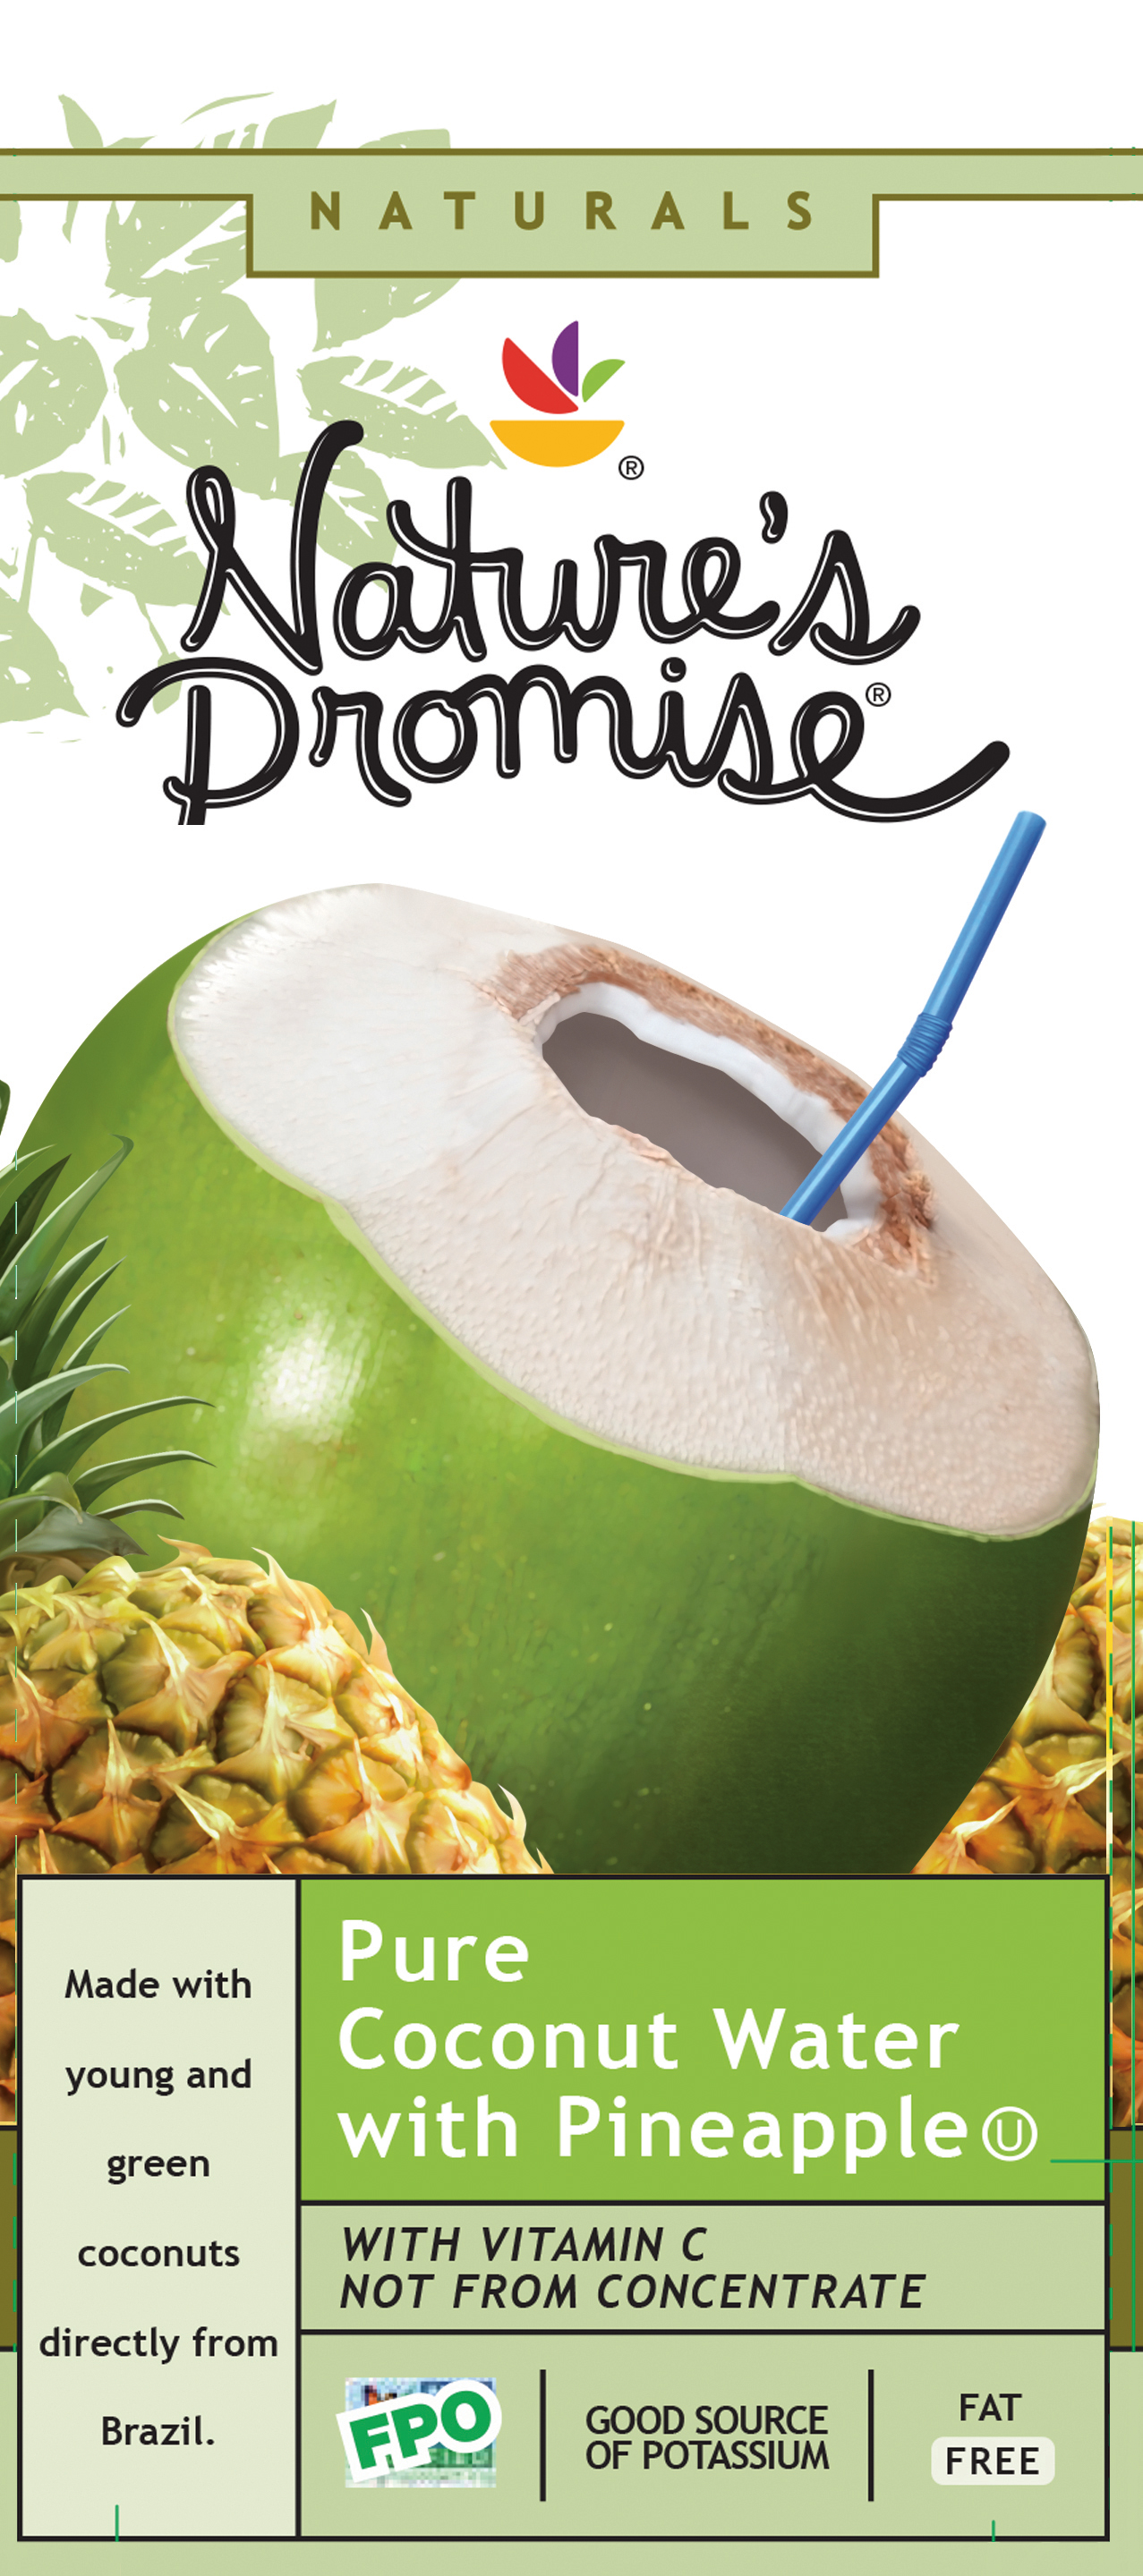 Coconut Pineapple Water